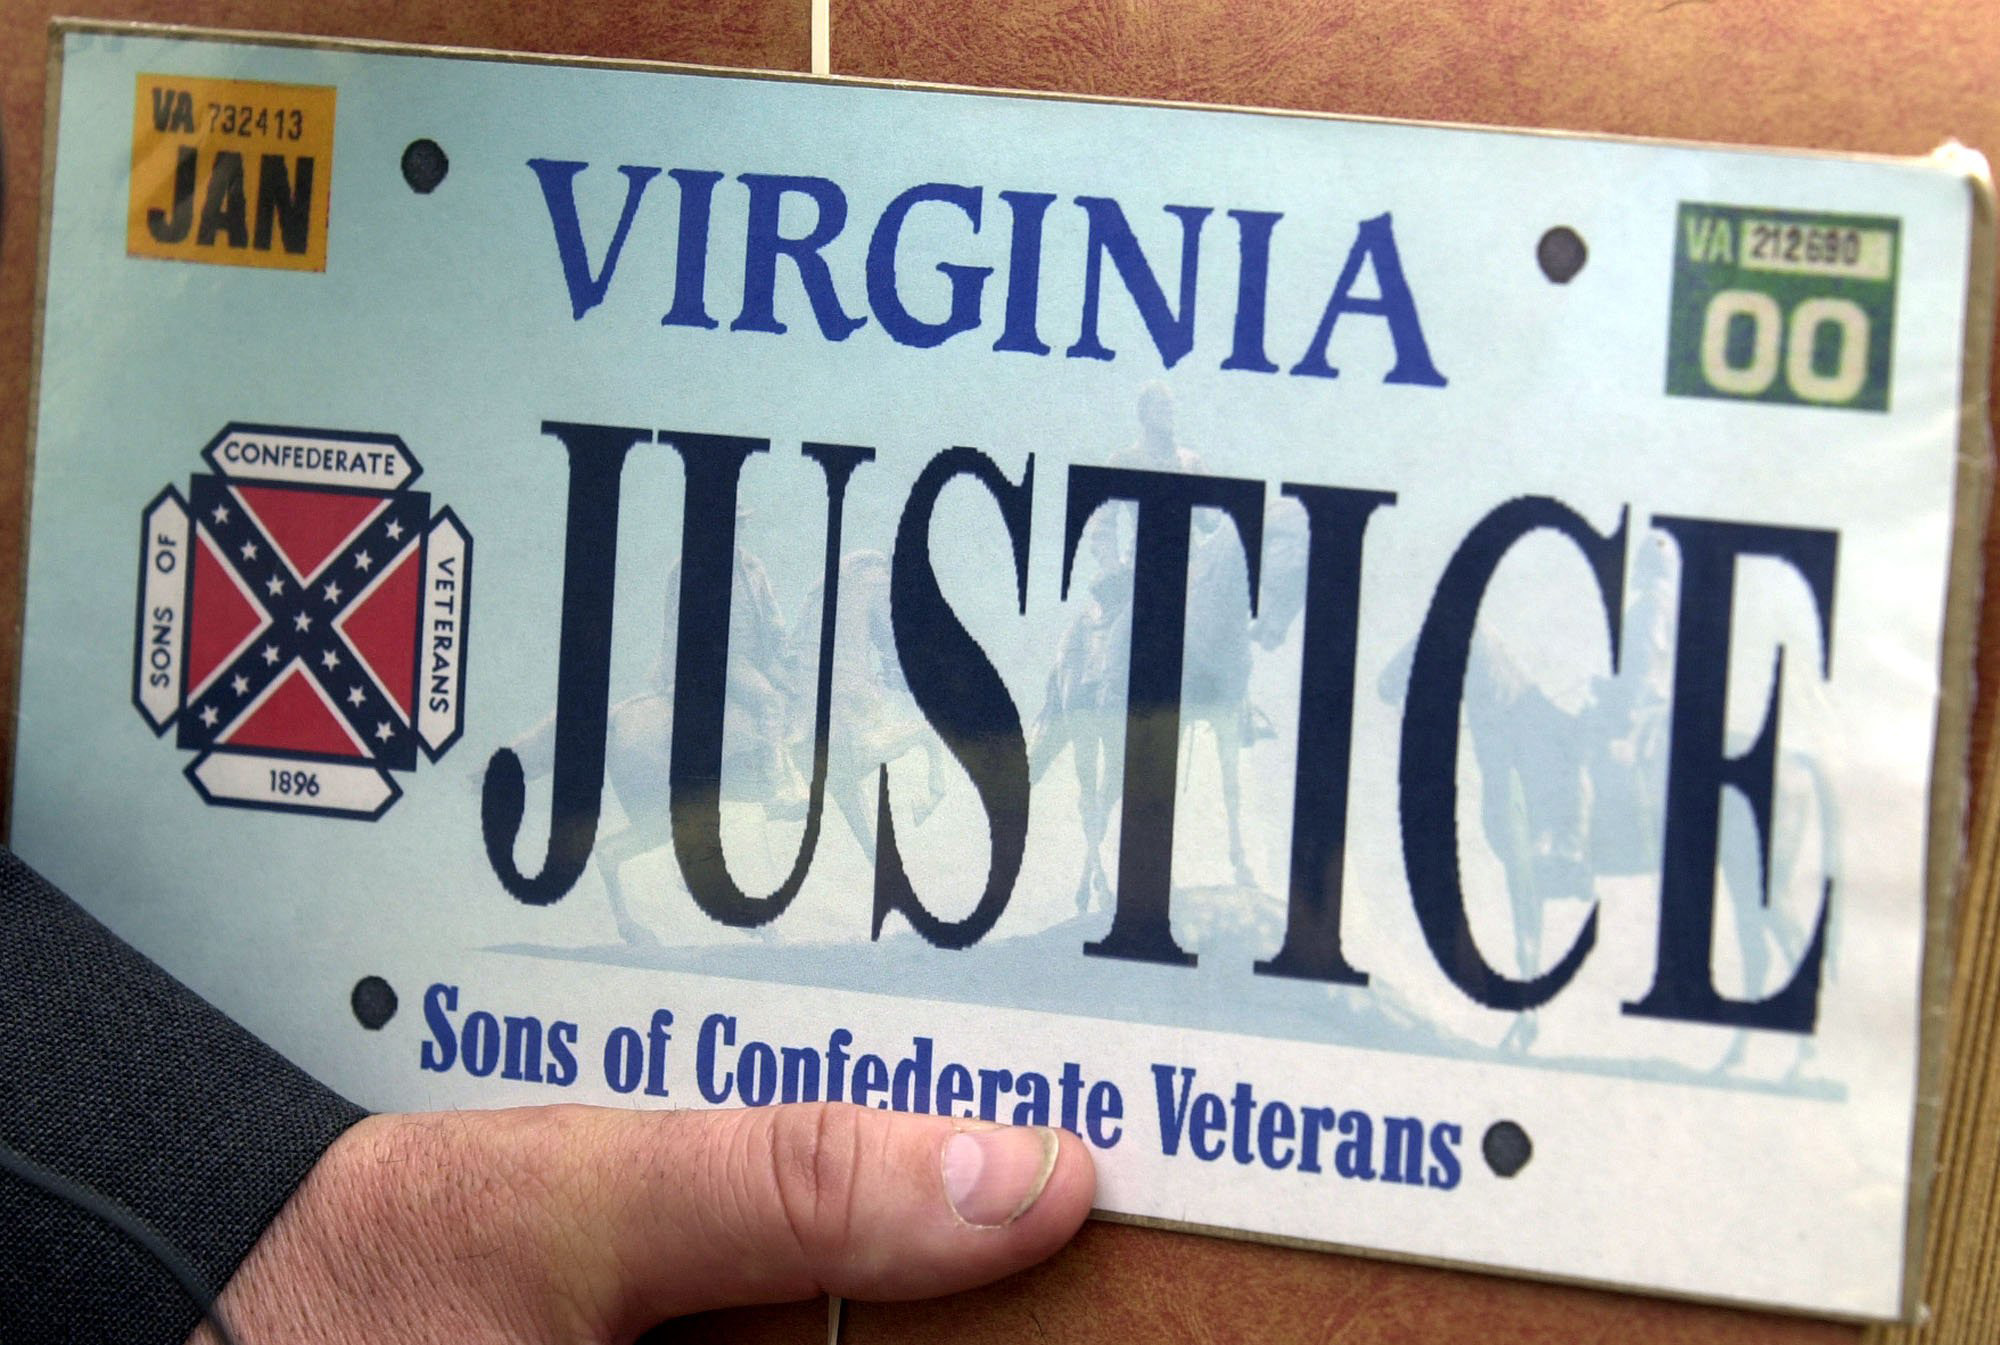 Order allows Virginia to recall license plates with Confederate flag